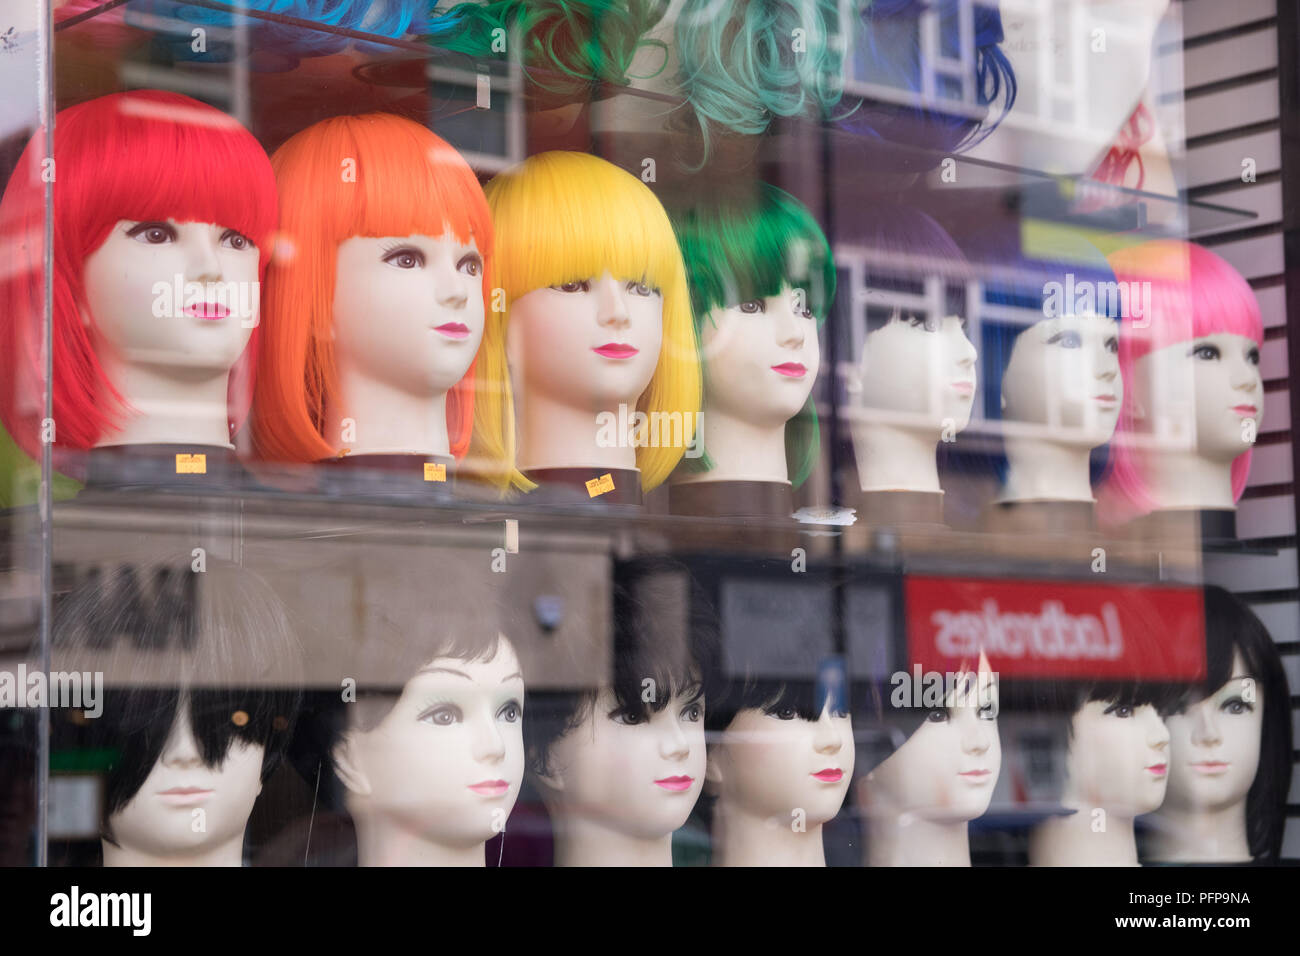 Perruques dans une vitrine à Hull, East Yorkshire Photo Stock